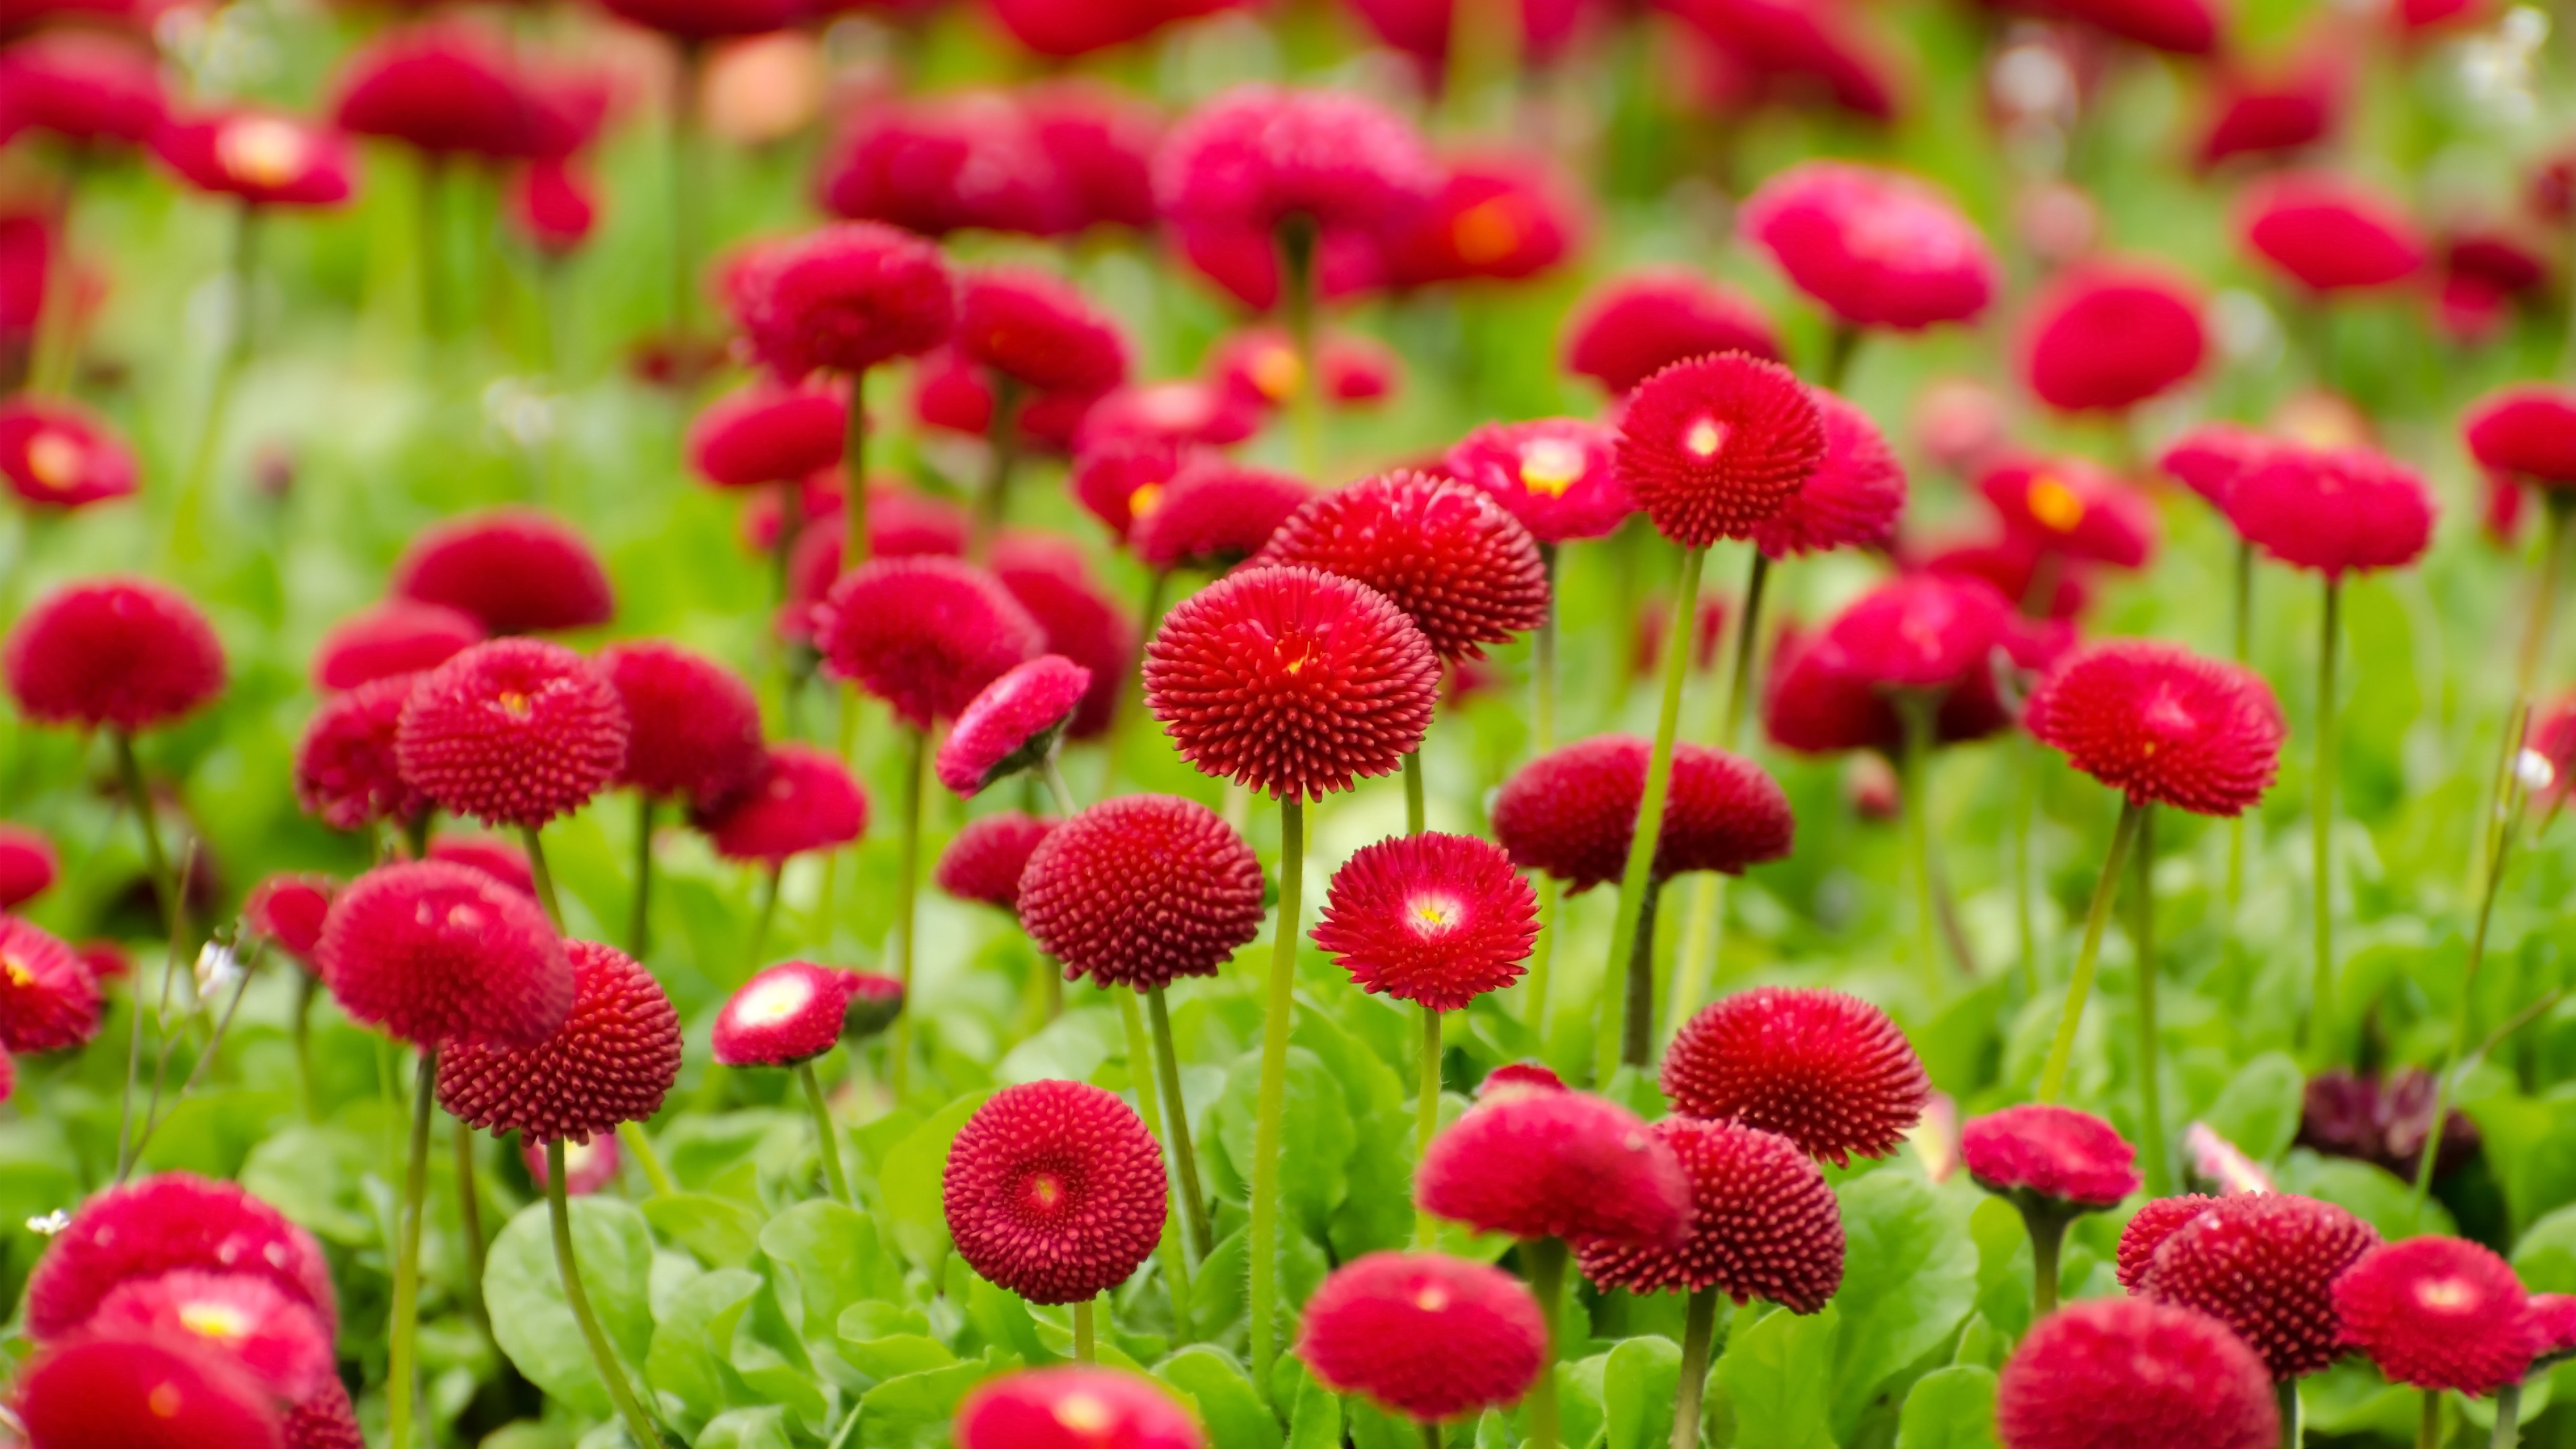 Image for flowers vector freeuse Red flowers wallpaper wallpapers for free download about (3,596 ... vector freeuse